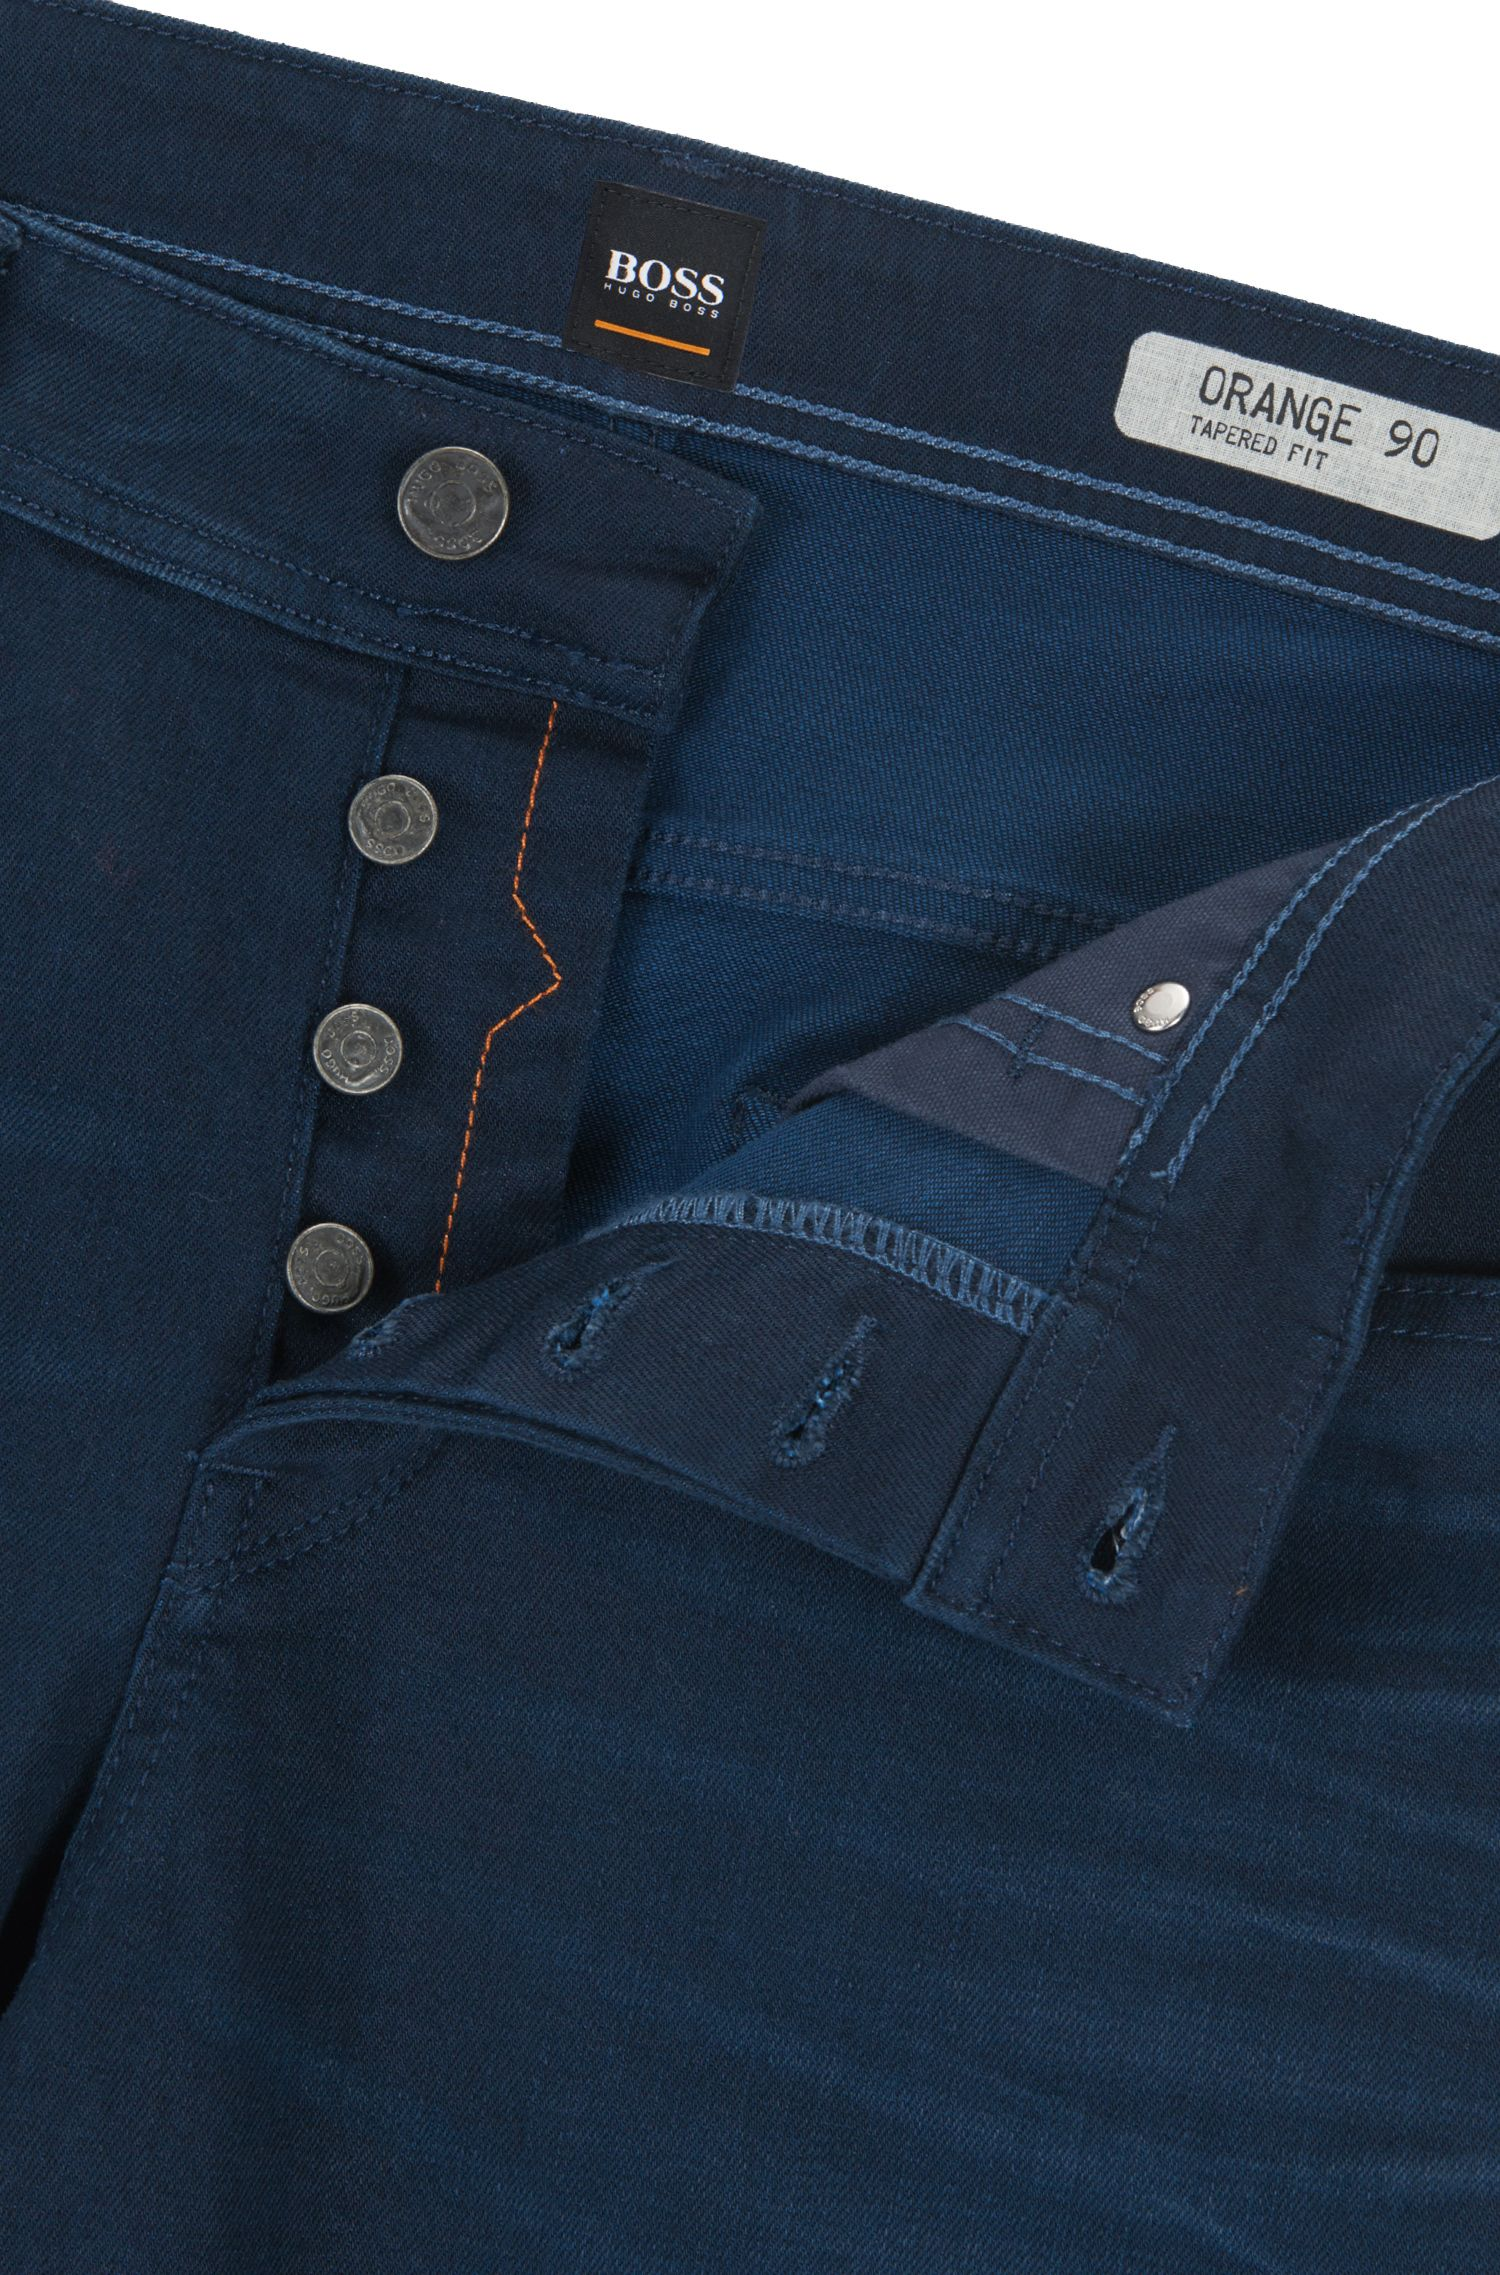 Vaqueros tapered fit en denim elástico con tono añil doble